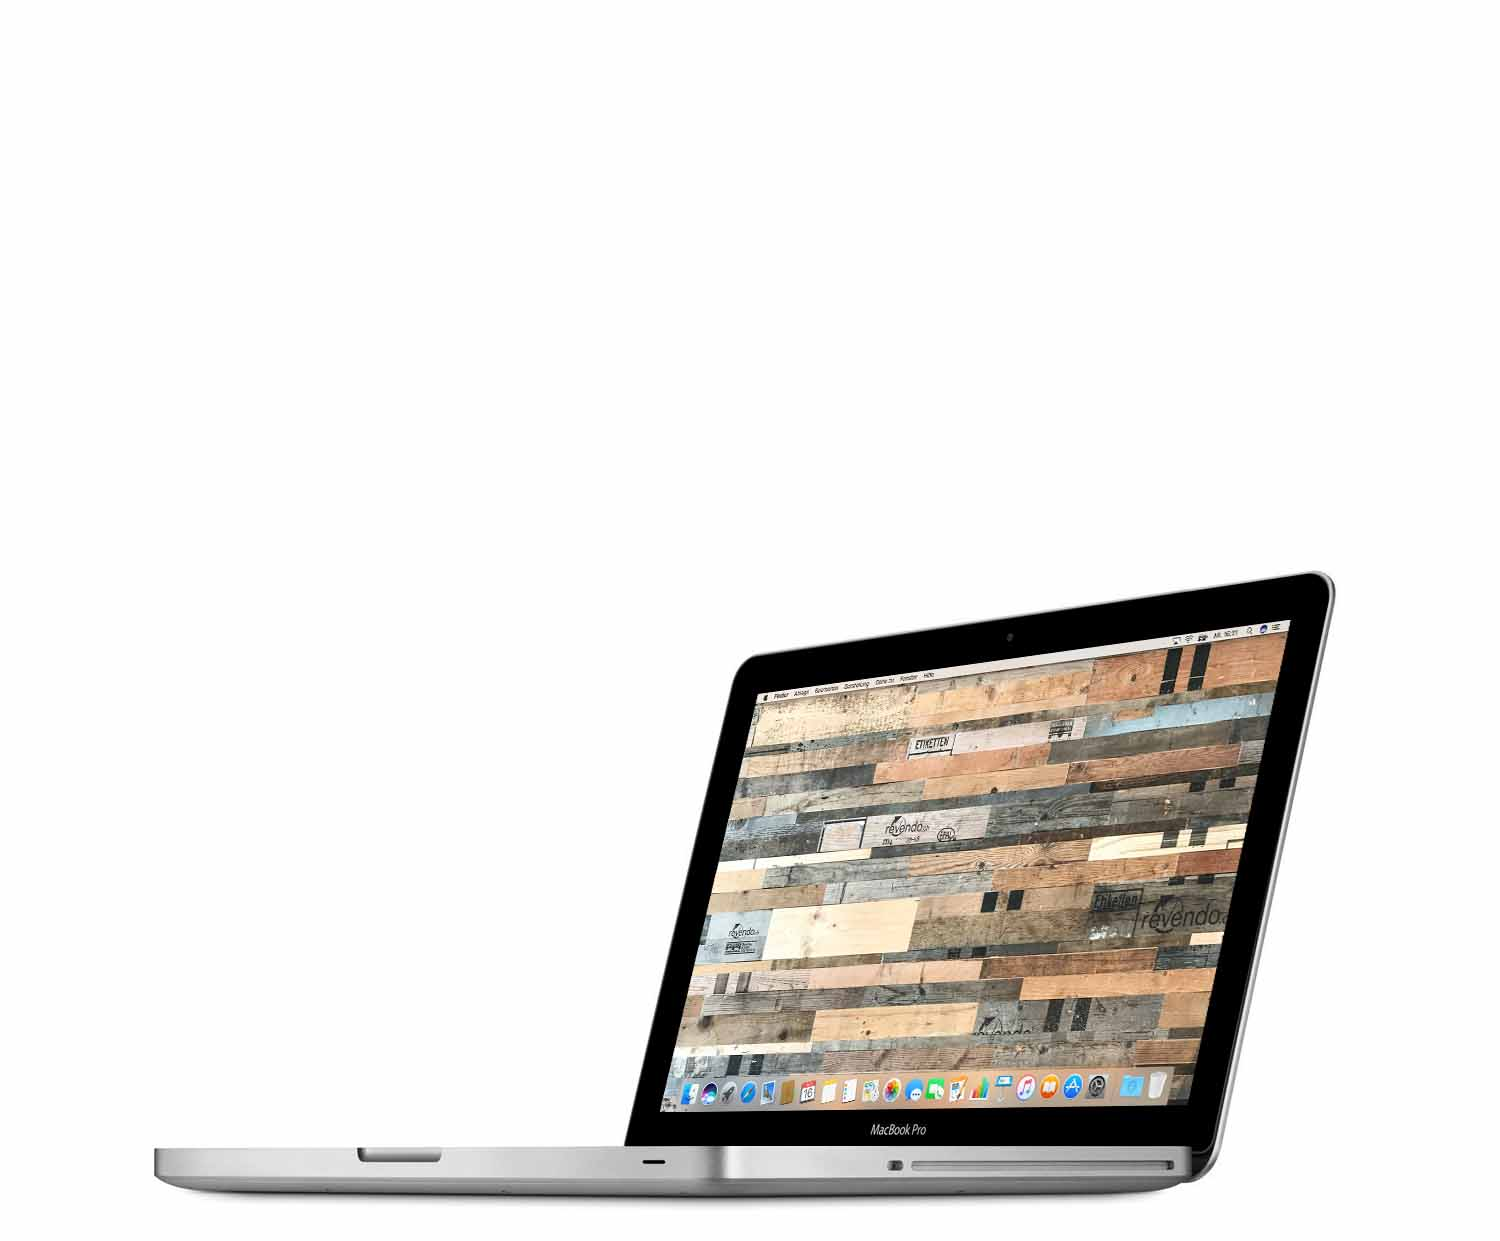 macbook pro 15 ghz core 2 duo. Black Bedroom Furniture Sets. Home Design Ideas